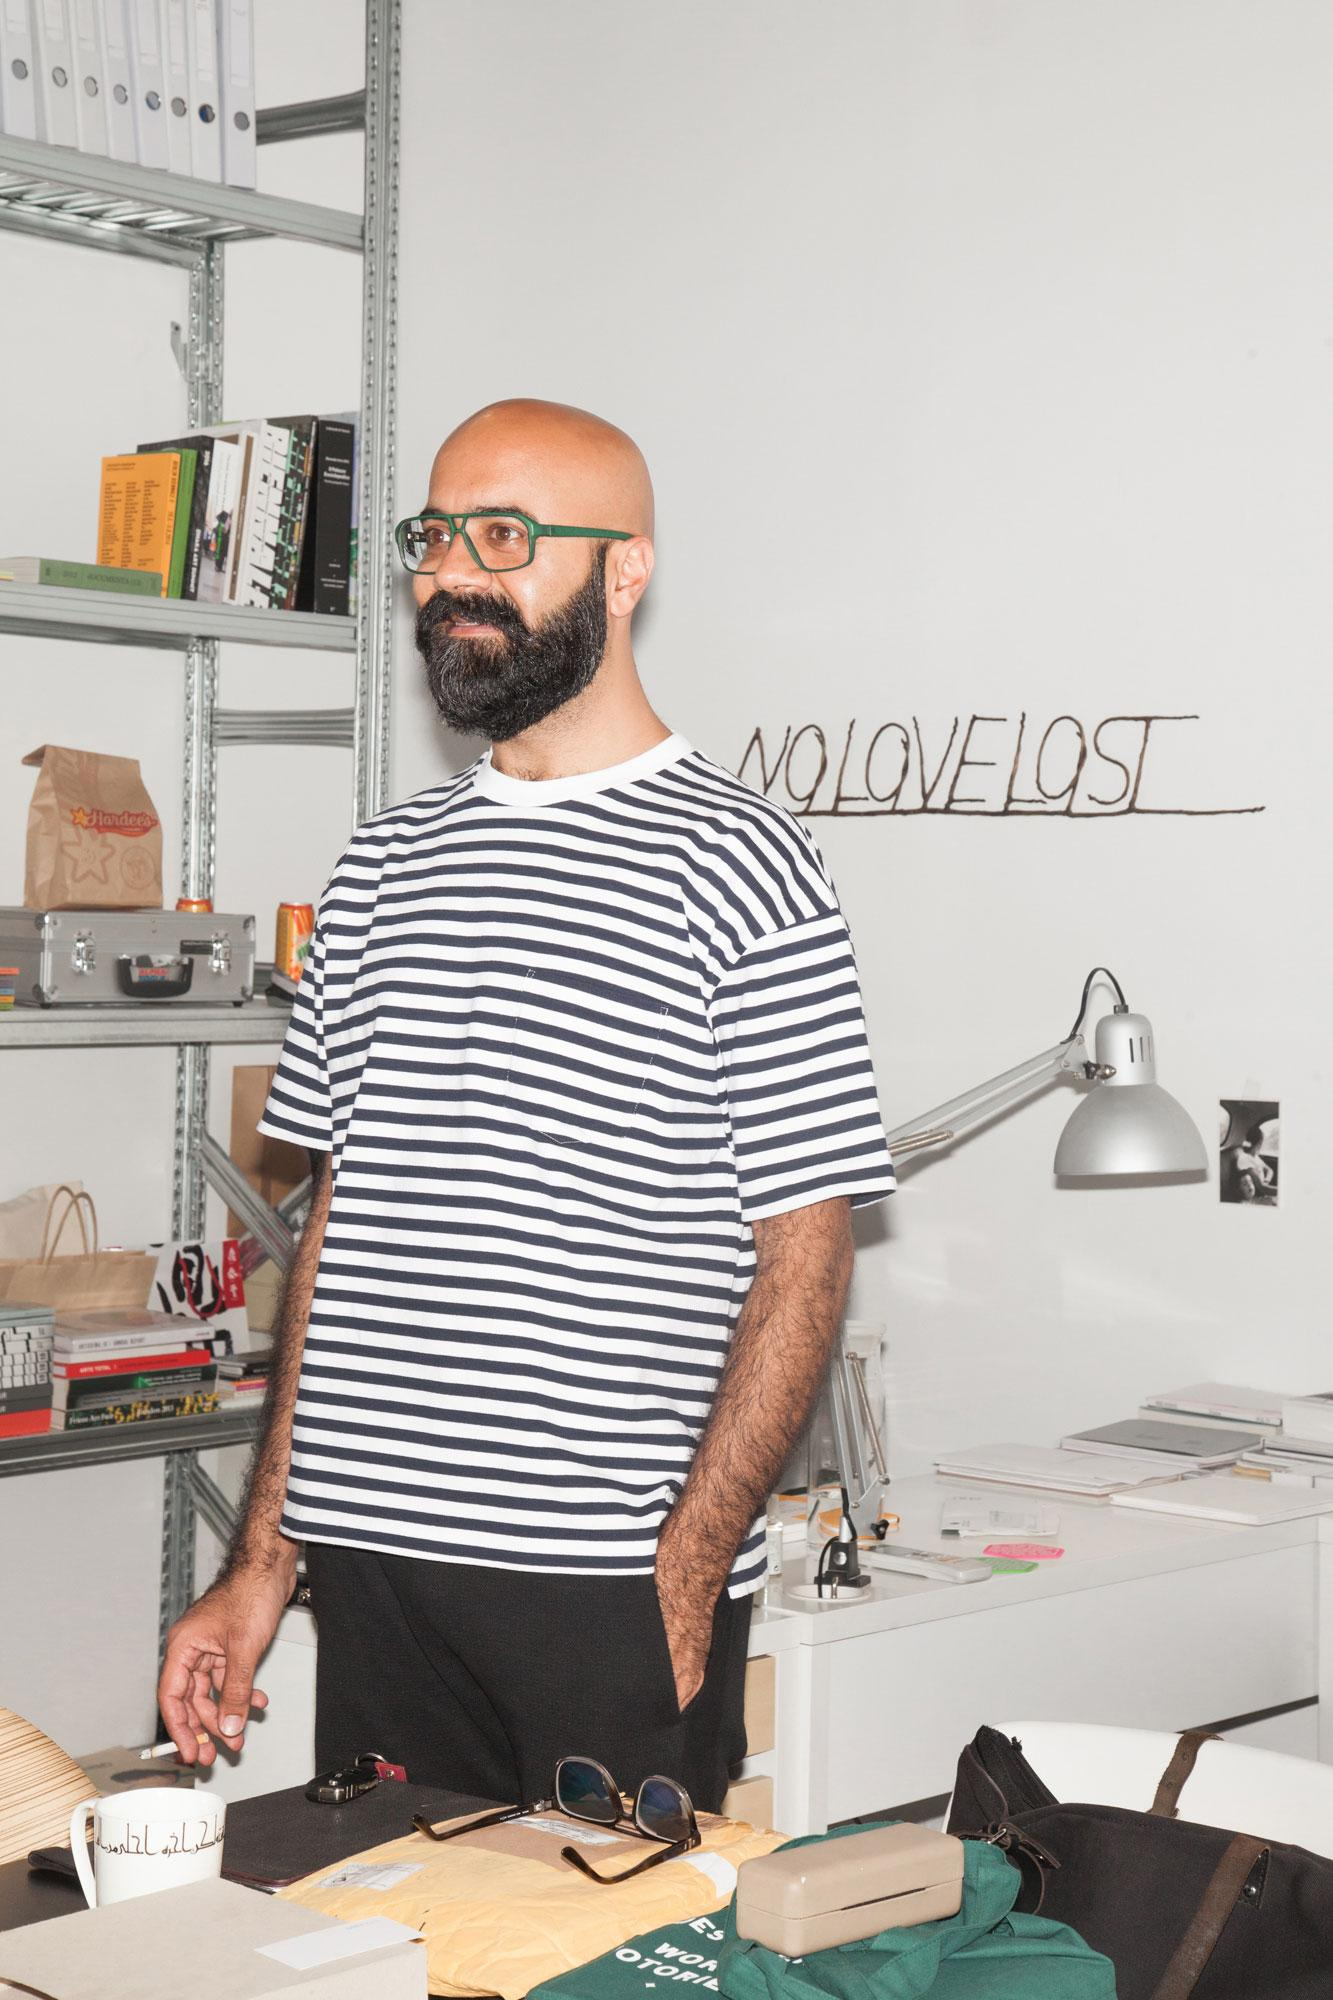 Umer Butt, founder anddirector ofGrey Noise gallery  /No Love Lost /byHossein Valamanesh in the background